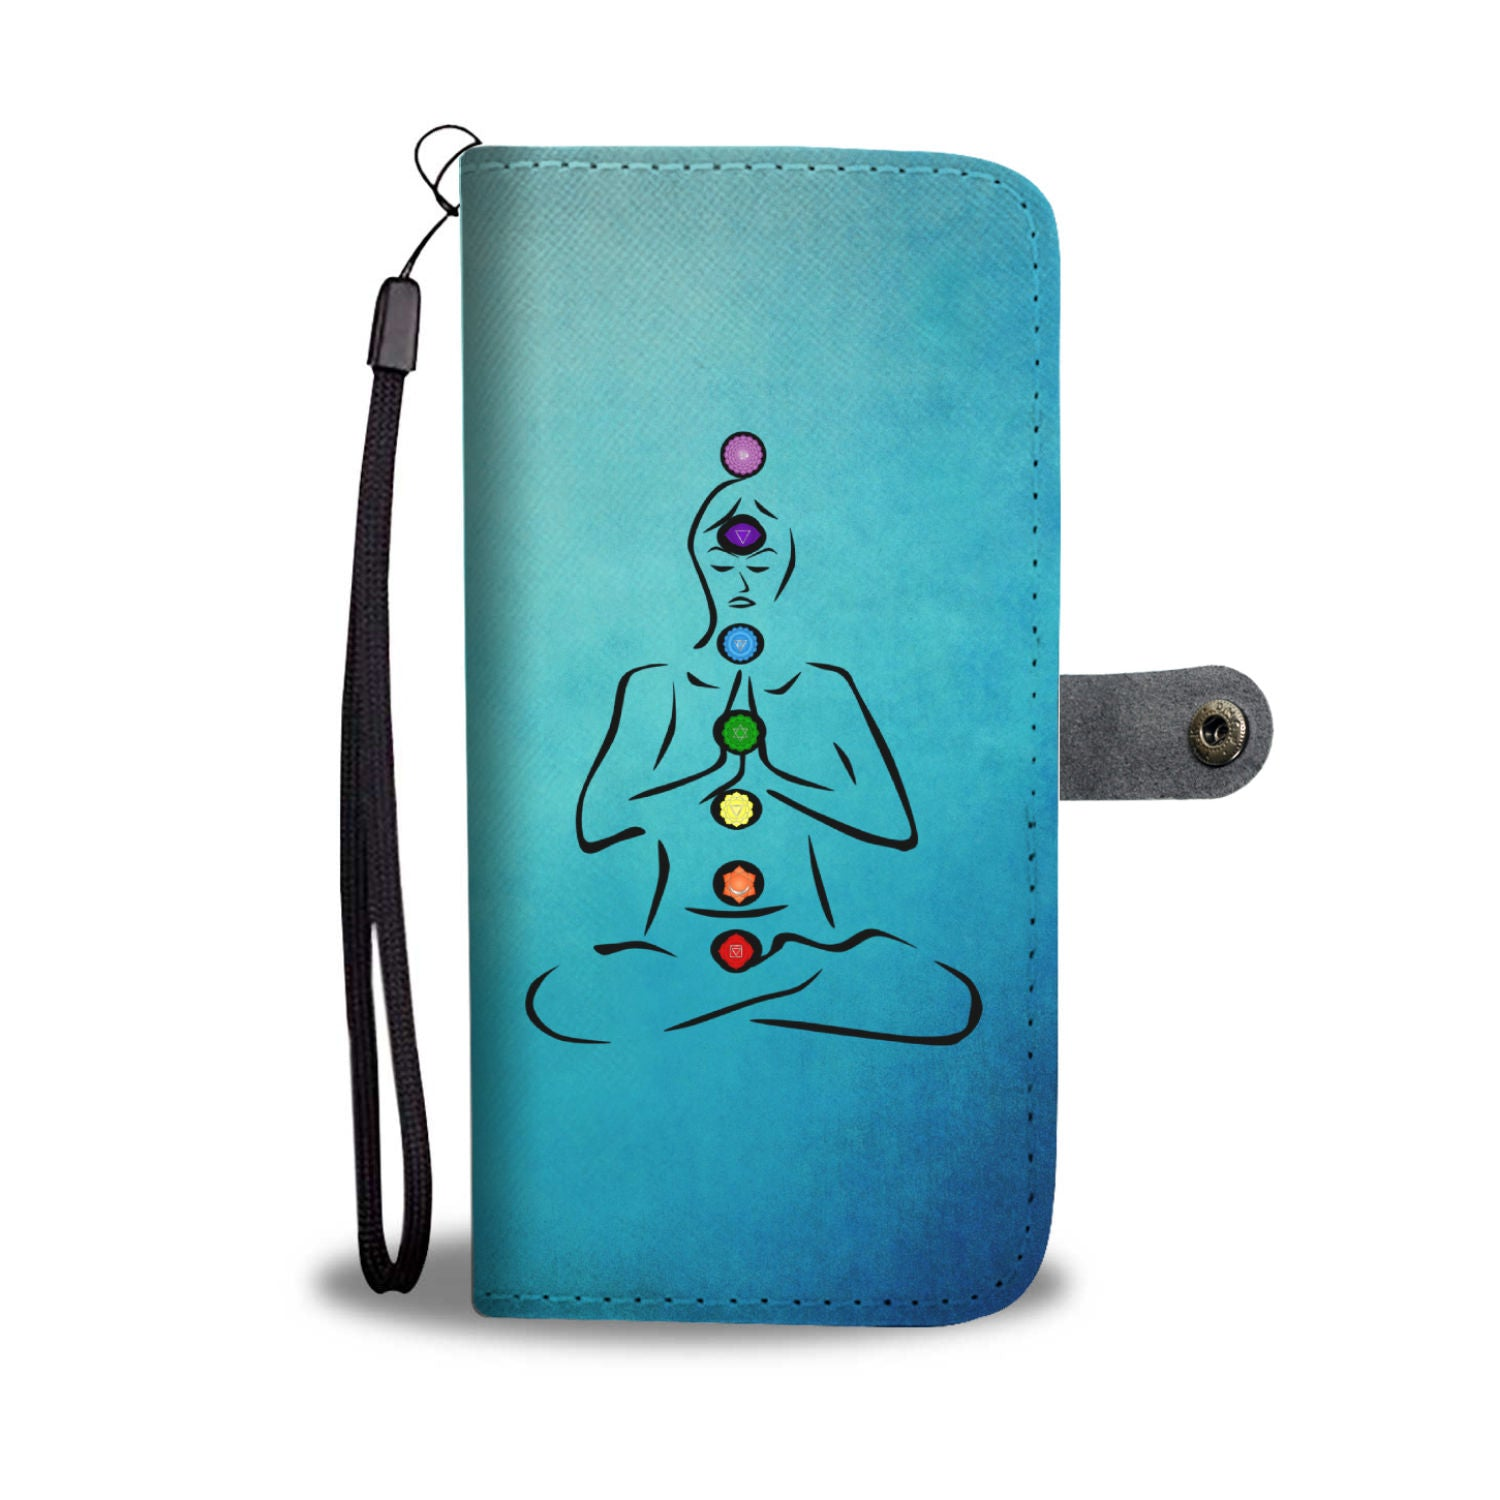 The 7 Chakras Wallet Phone Case